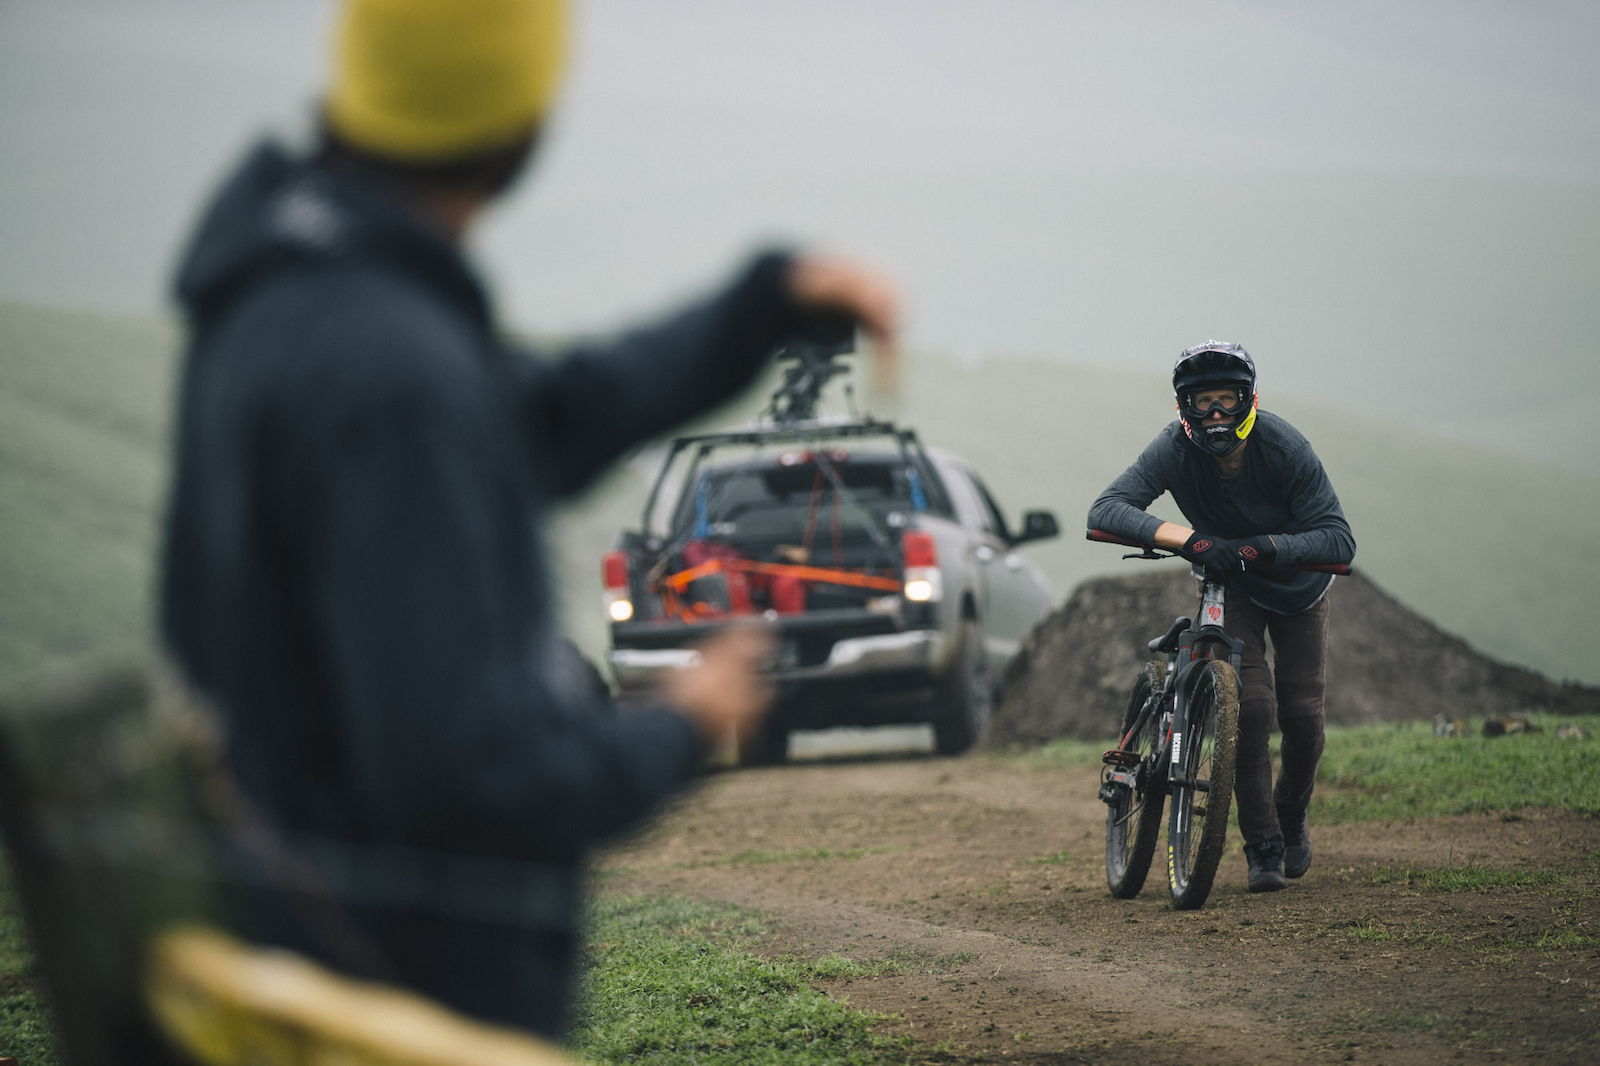 Brandon Semenuk in his 1 shot segment for unReal movie in Cambria California USA 2015 Anthill Films